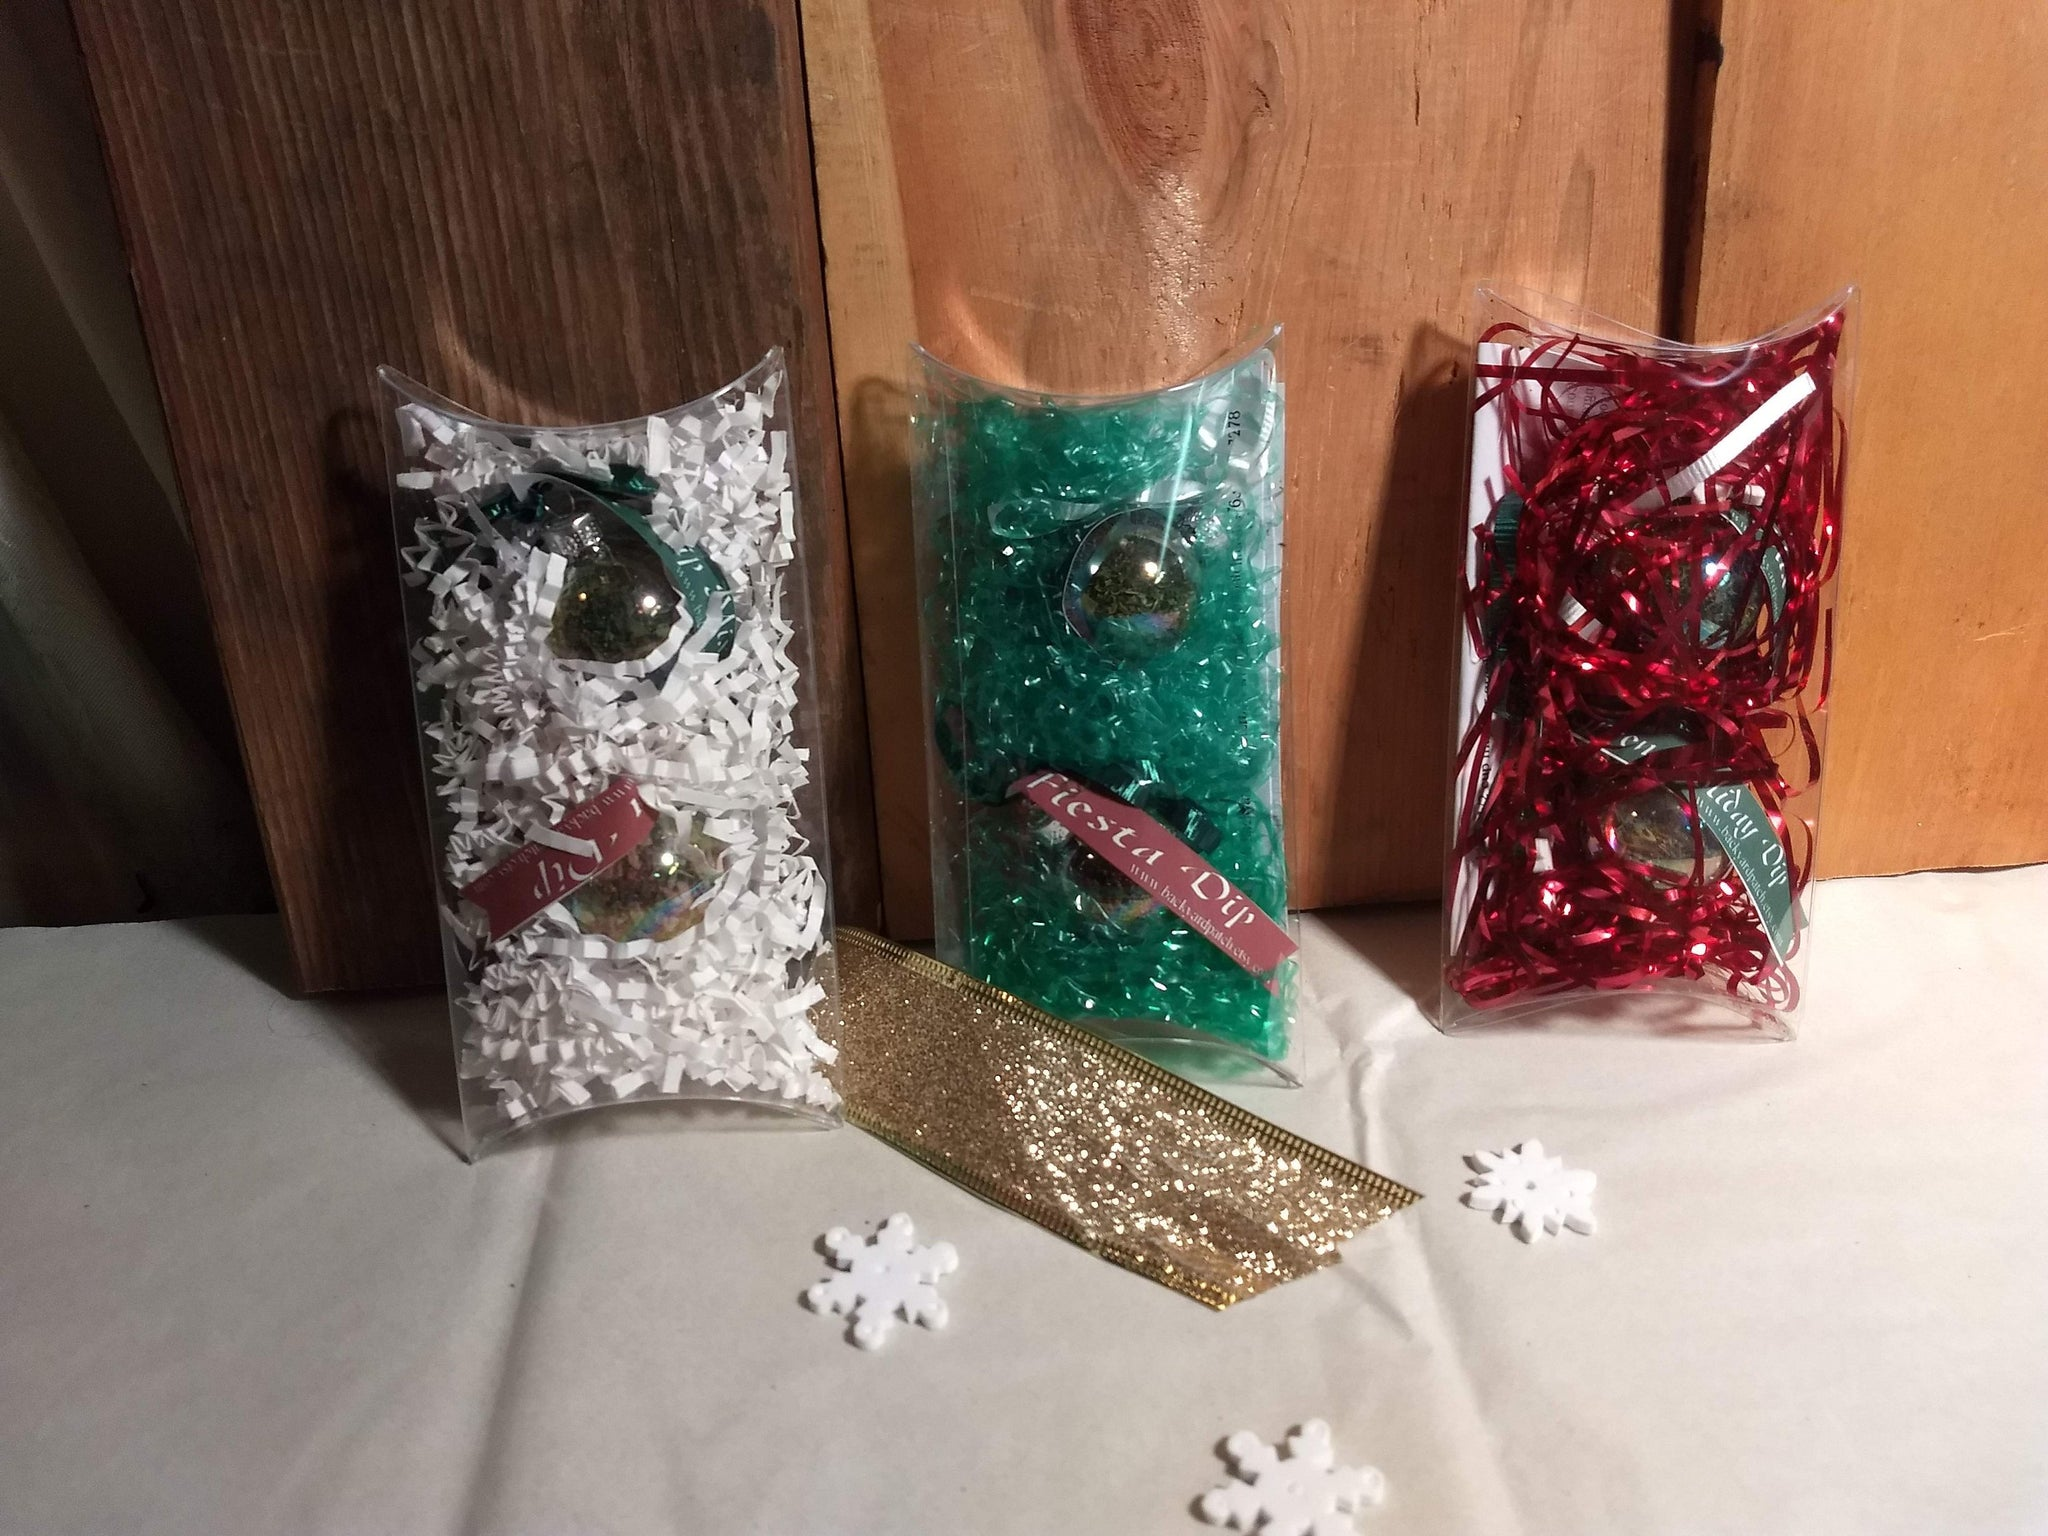 Dip Ornaments, Holiday bulb-shaped ornaments in a gift set filled with our famous dip mixes